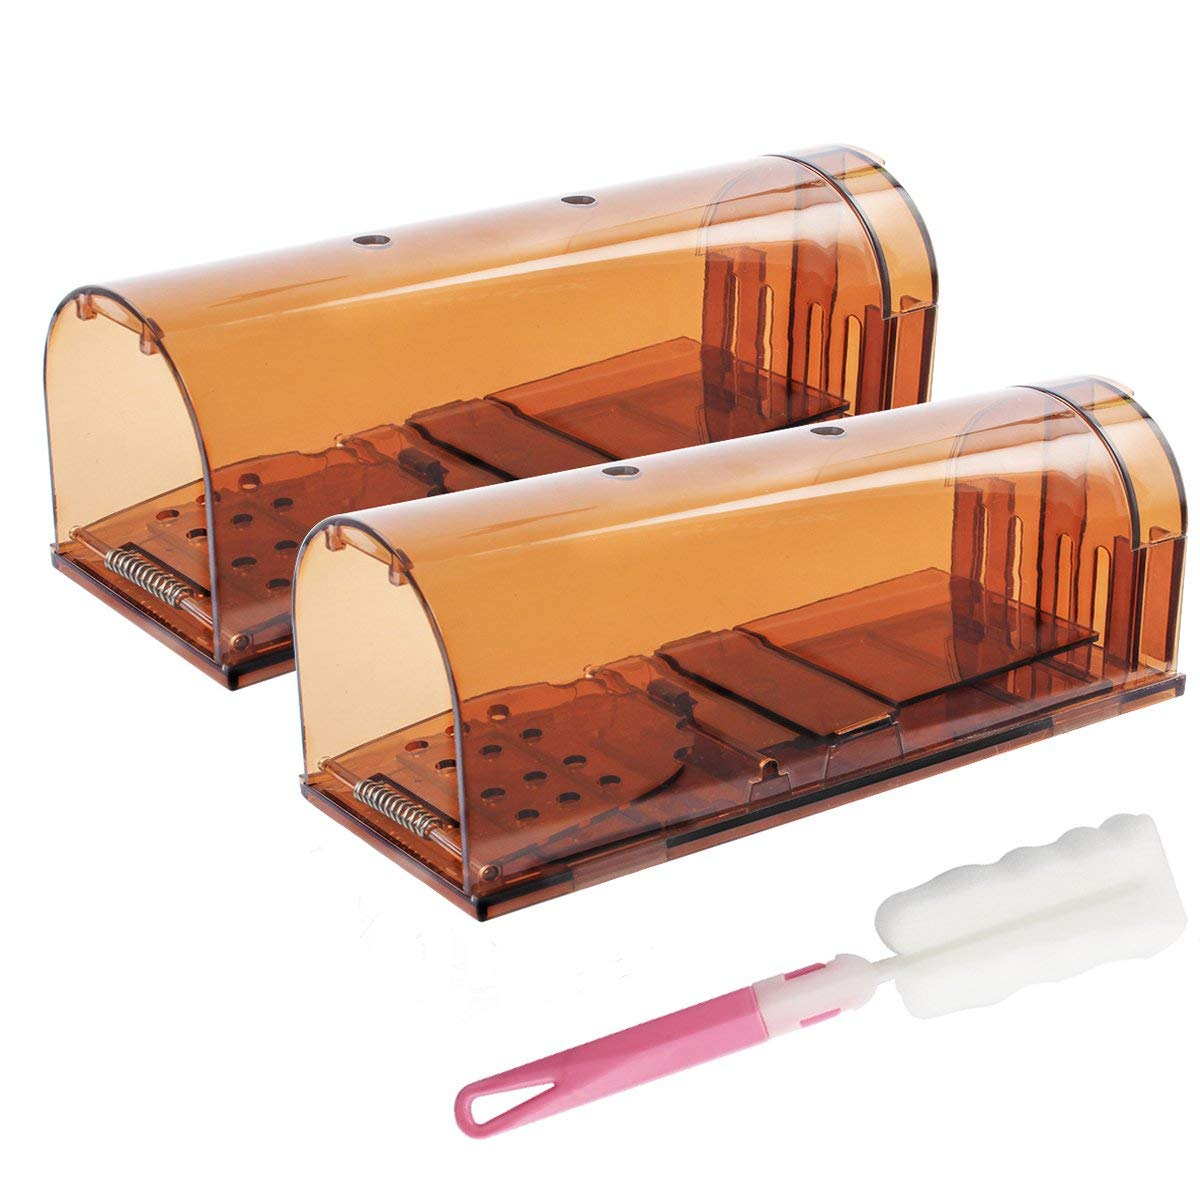 Humane Mouse Trap Bigger Version Mice Alive No Kill Rodent Trap Rat Trap for Home Kitchen Garden Catch and Release Trap, Safe For Children and Pet (2Pack and 1 Brush)